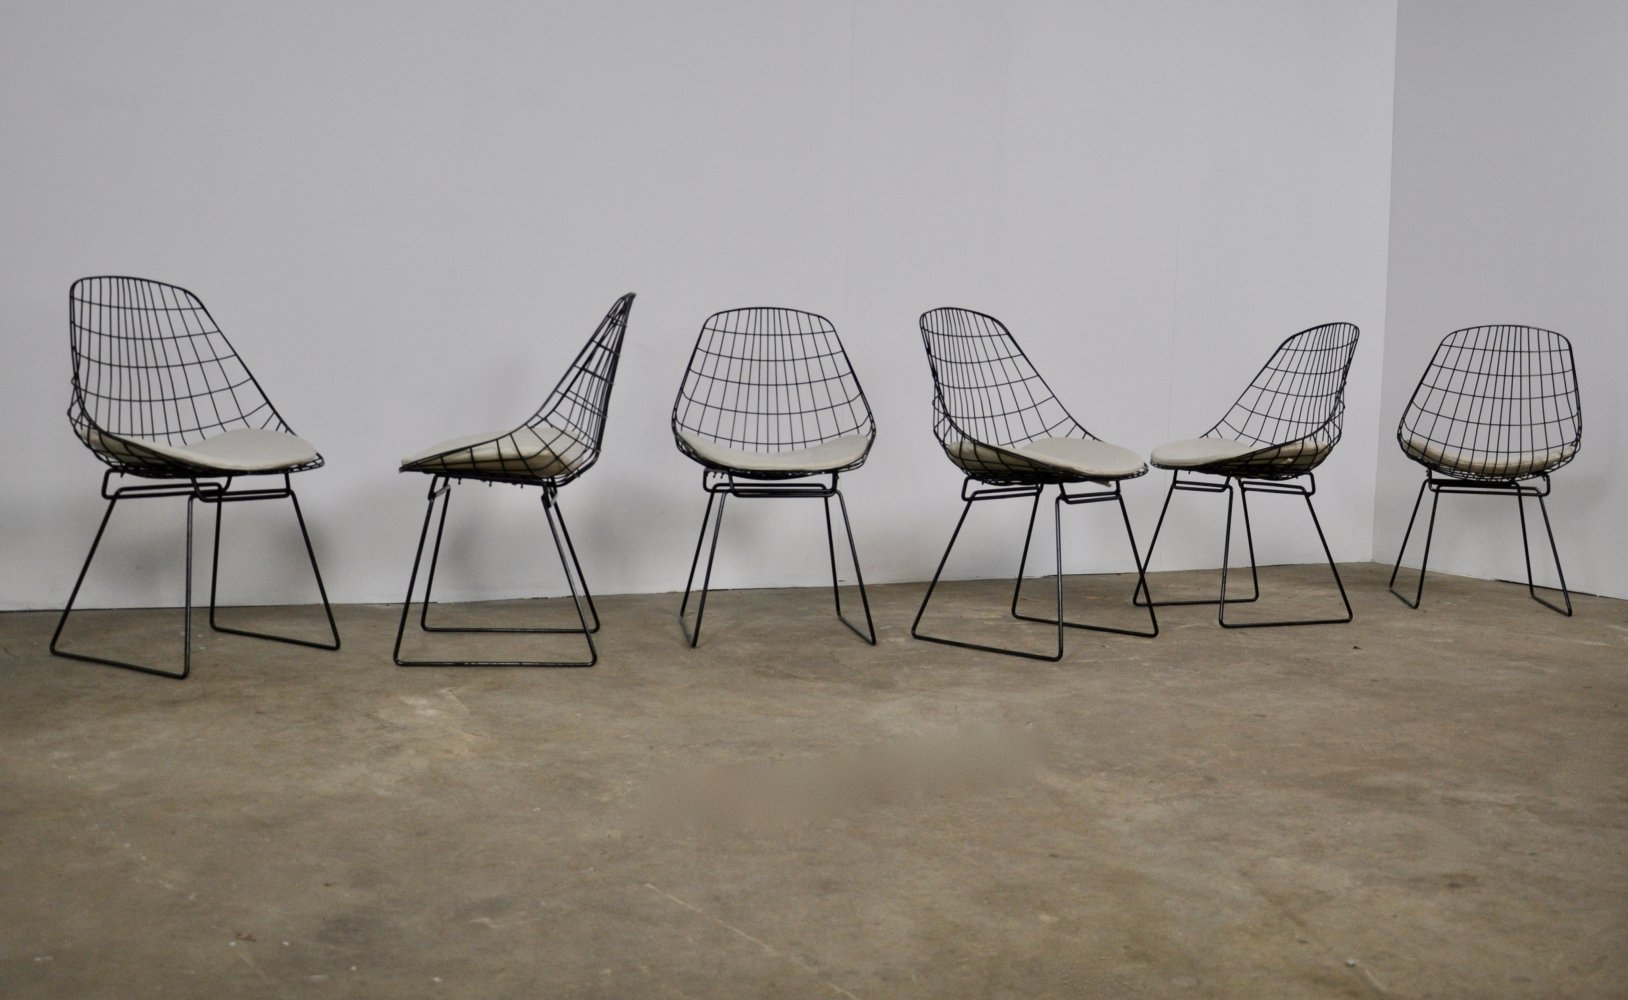 Set of 6 Wire SM05 Chair by Cees Braakman & Adriaan Dekker for Pastoe, 1958